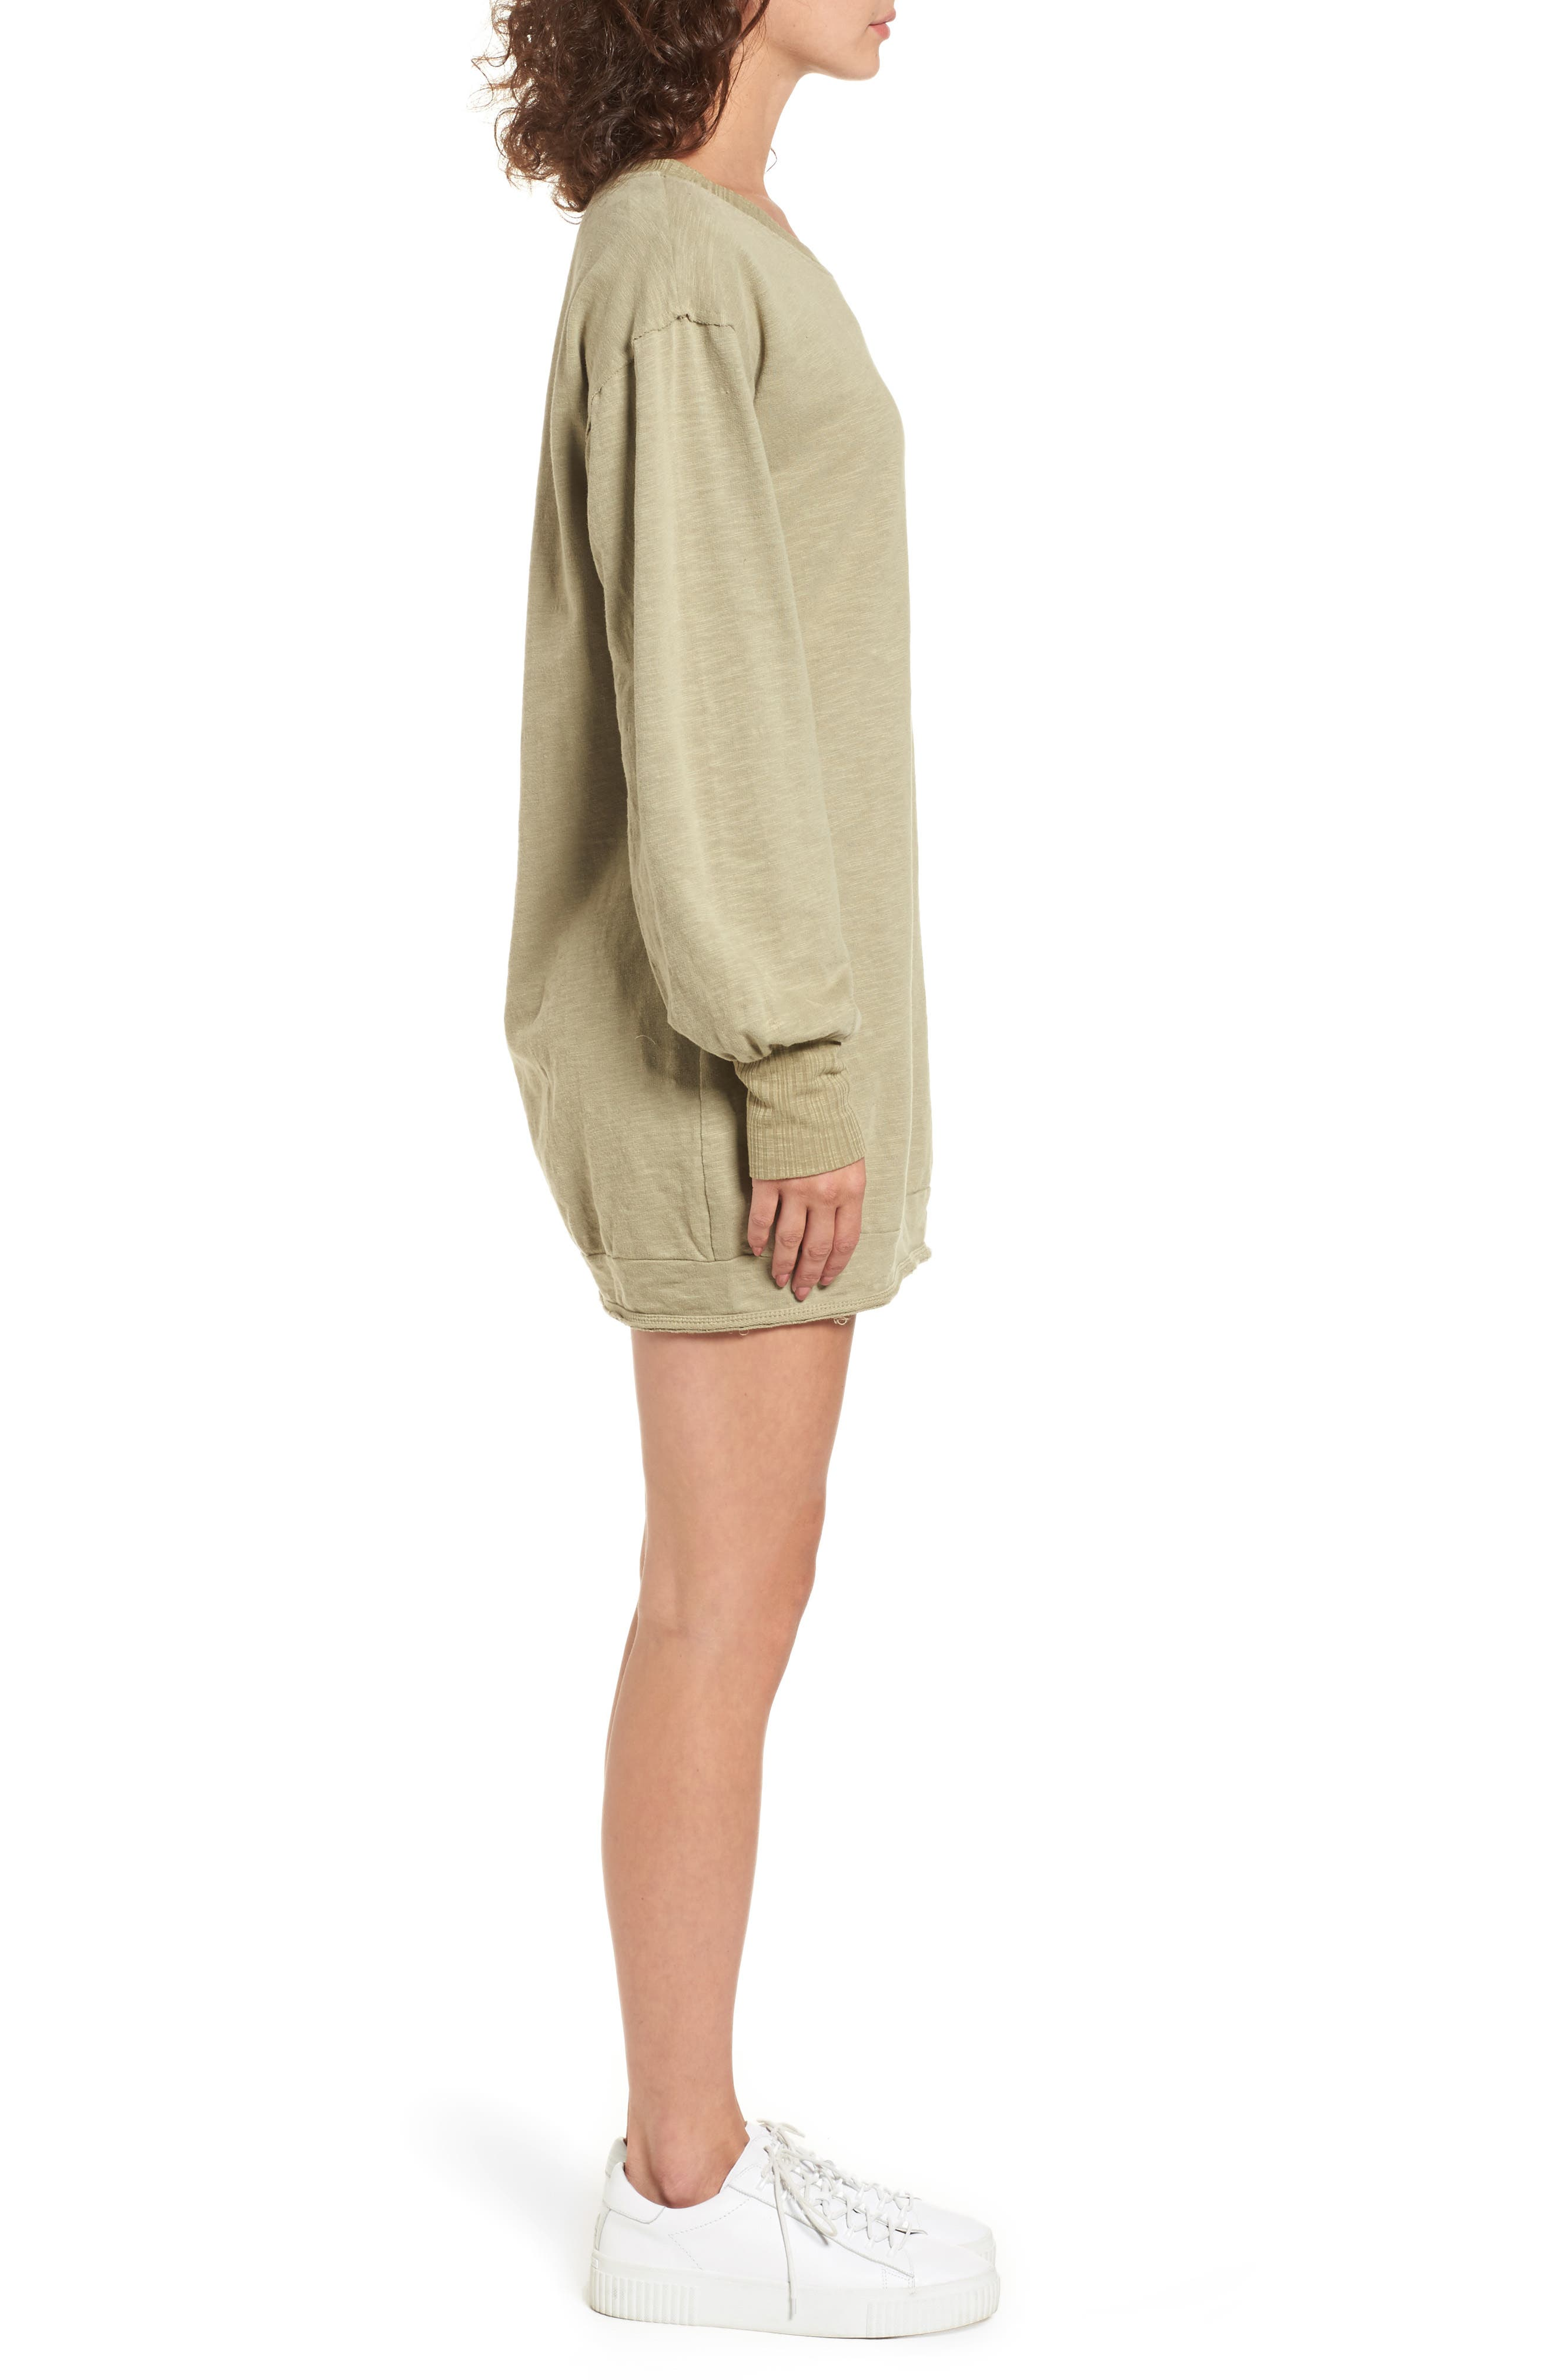 Mountains Fade Sweatshirt Dress,                             Alternate thumbnail 4, color,                             Sage